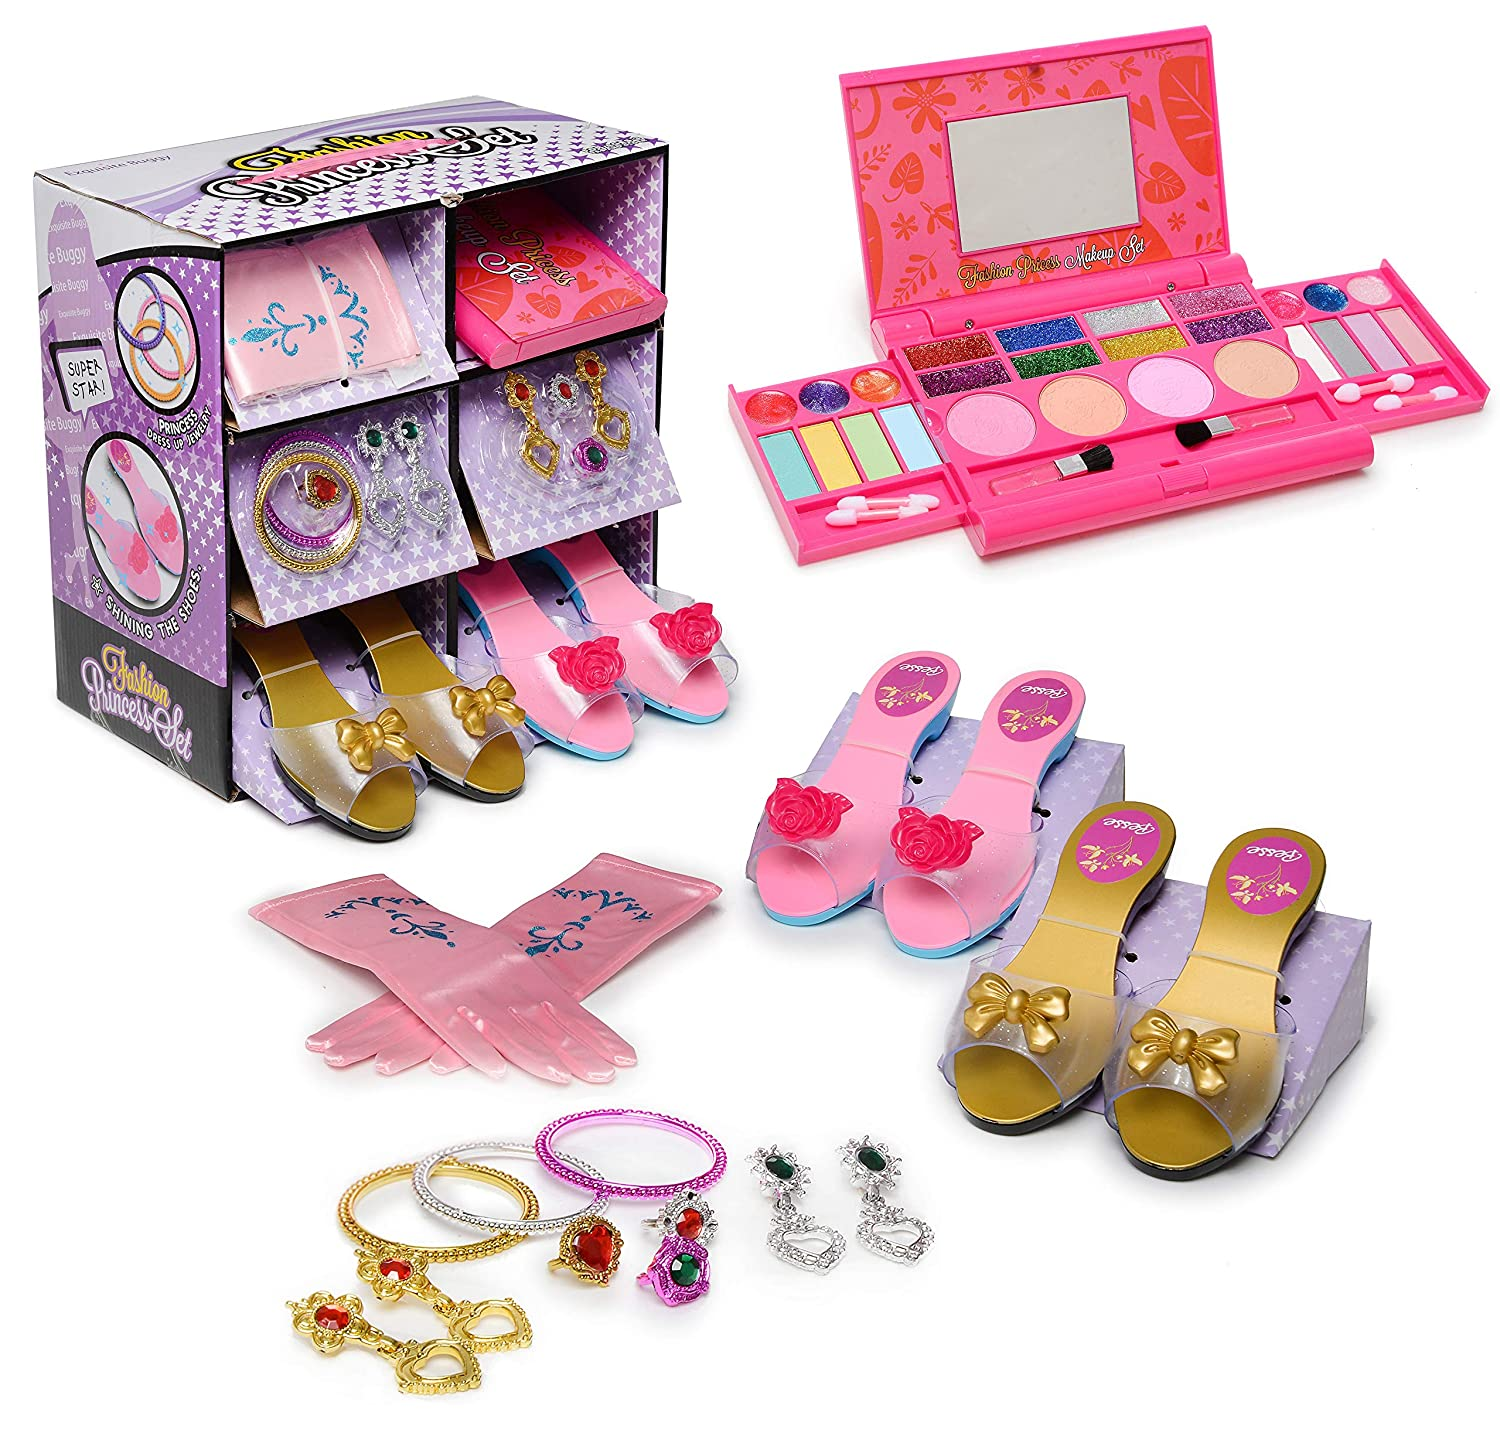 My First Princess Makeup Set WASHABLE with Mirror and Dress Up Role Play Collection - Includes 2 Shoe set and, 1 set Pink Princess Gloves and Jewelry Boutique - SAFETY TESTED- NON TOXIC B075M337J6